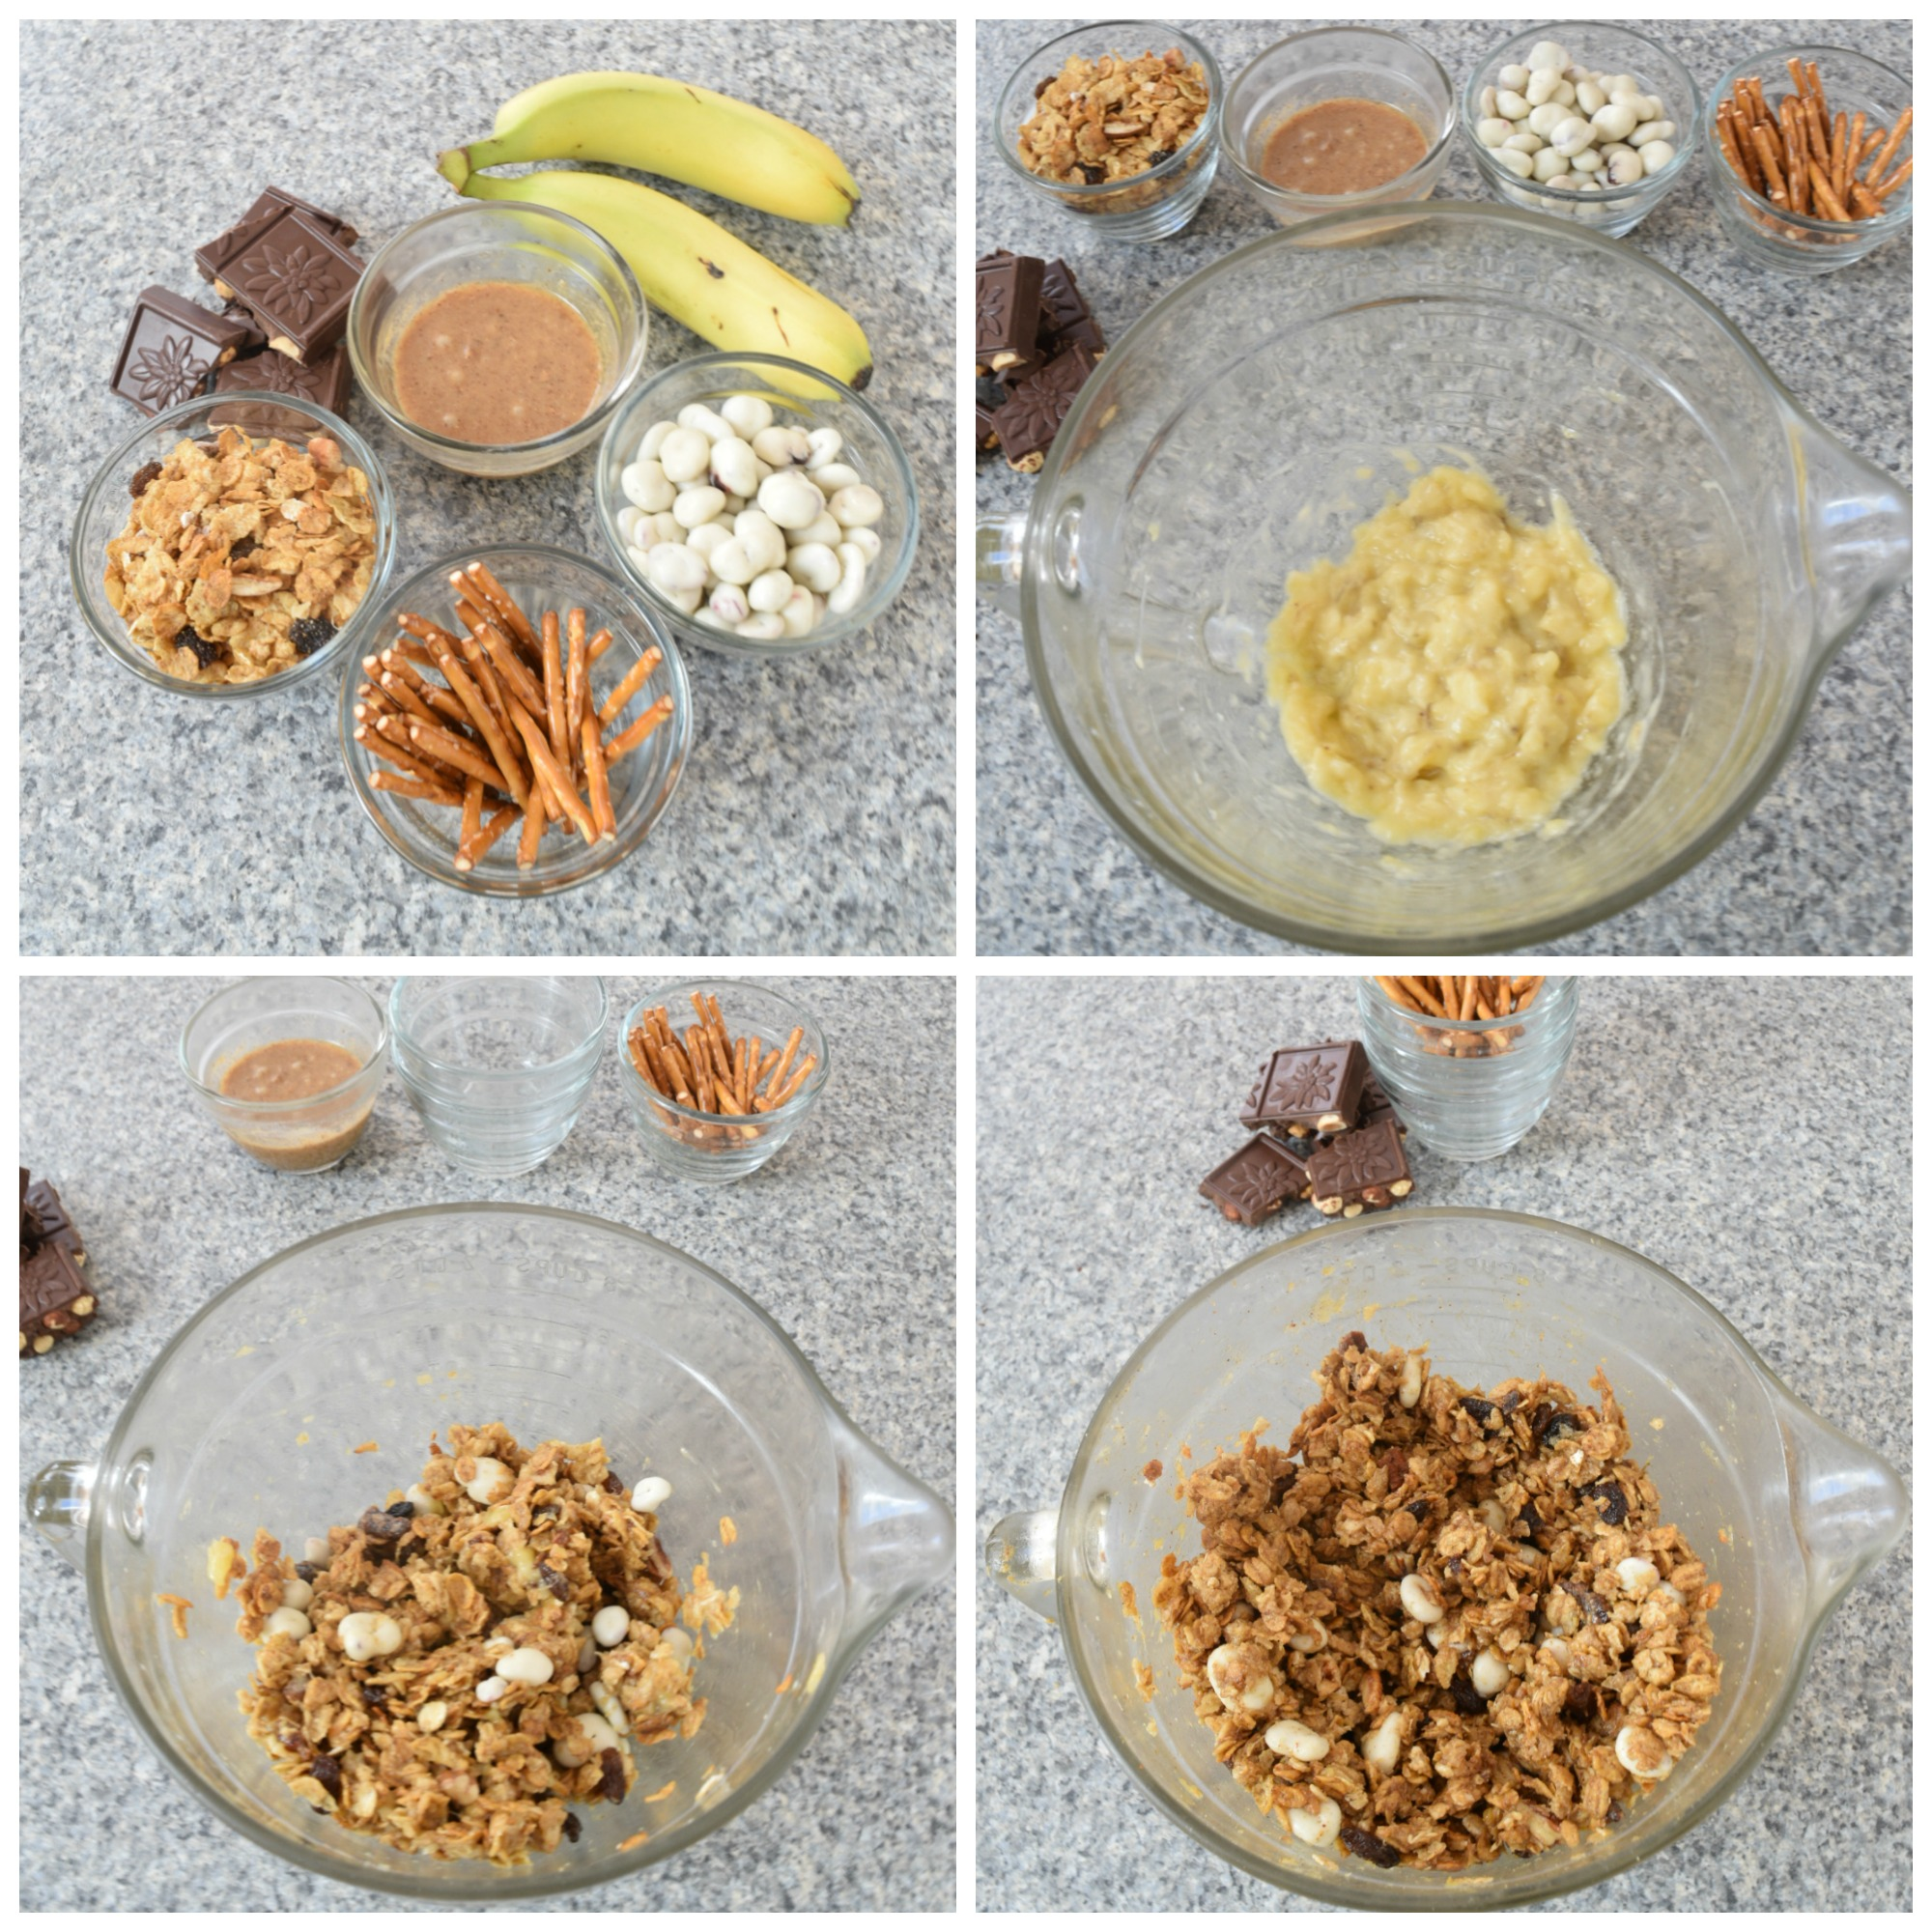 ingredients for no bake cereal bites